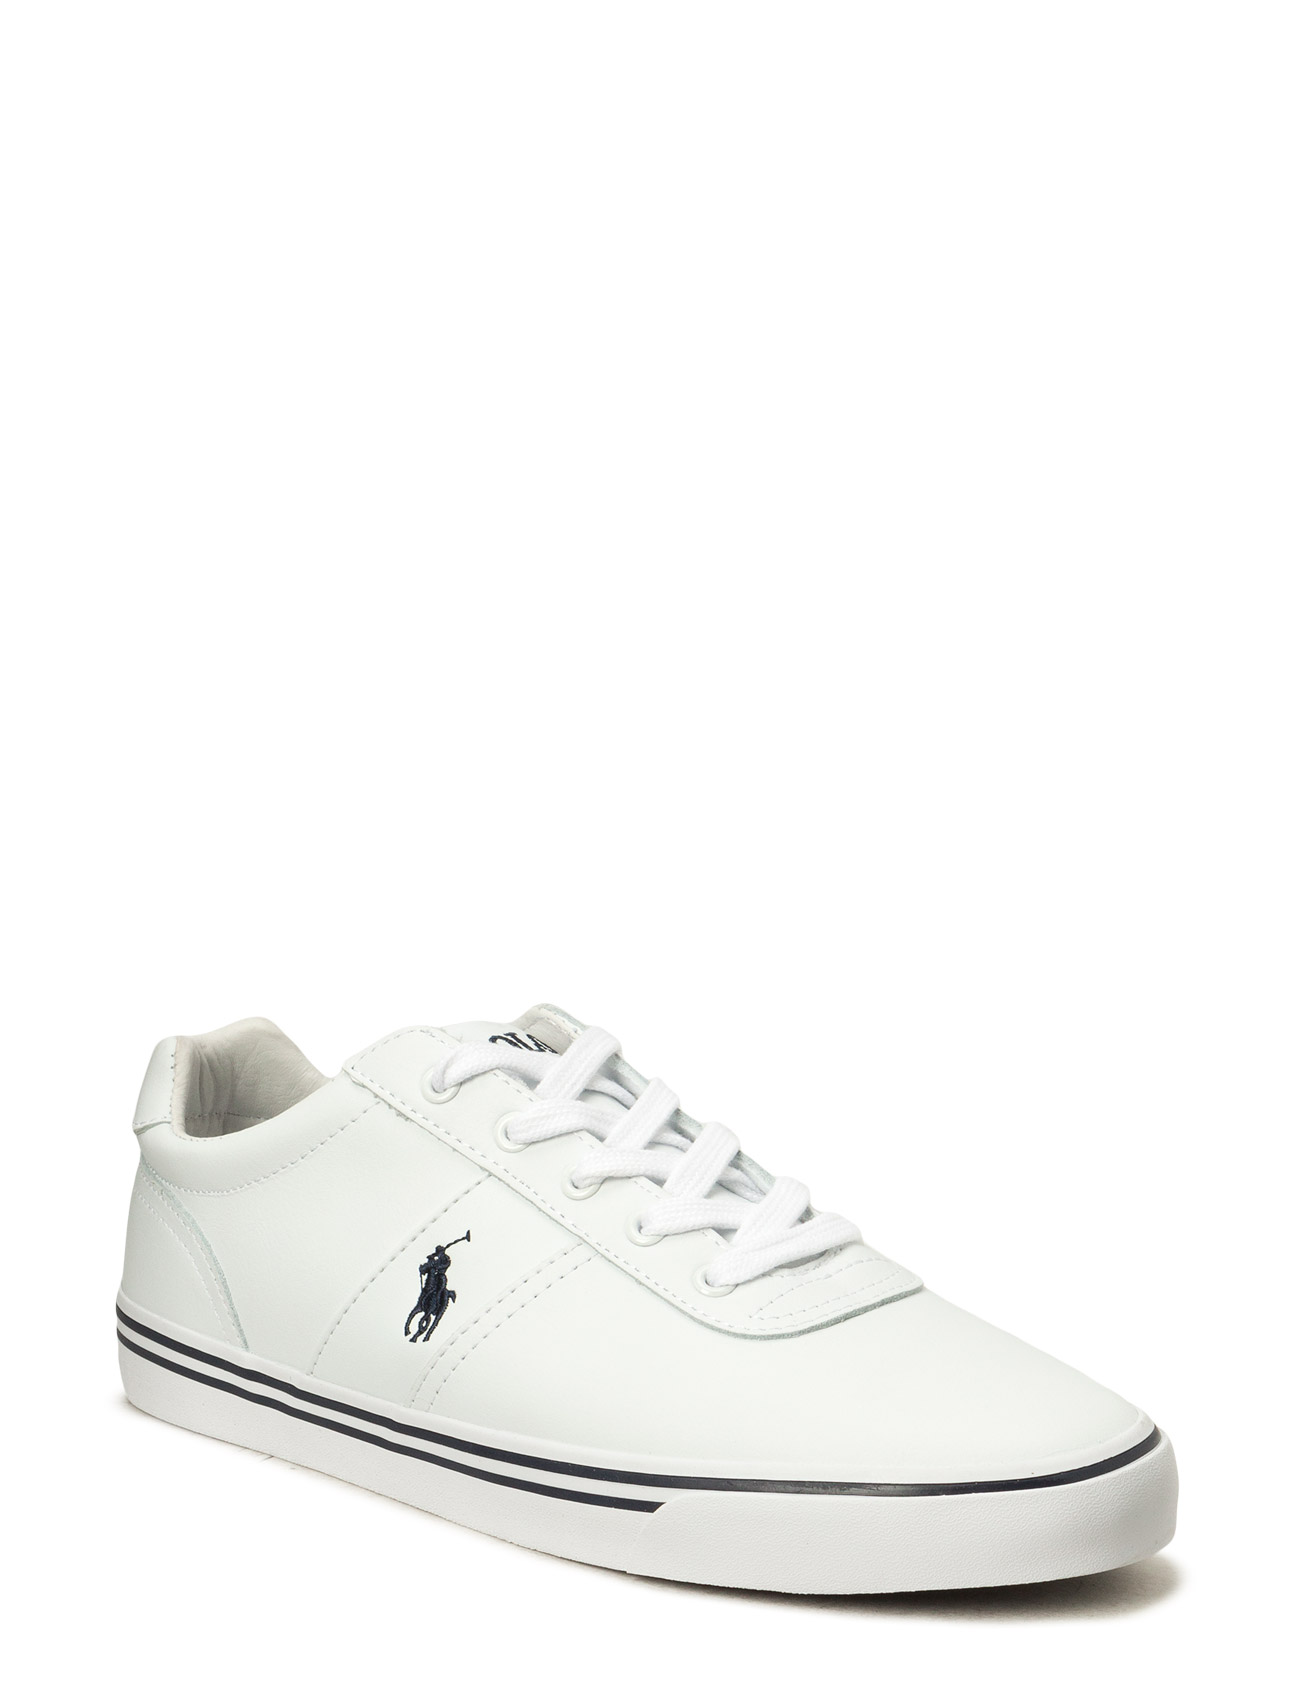 Sneakerwhite59 Leather €Polo Ralph Lauren 40 Hanford 0mOv8nwN